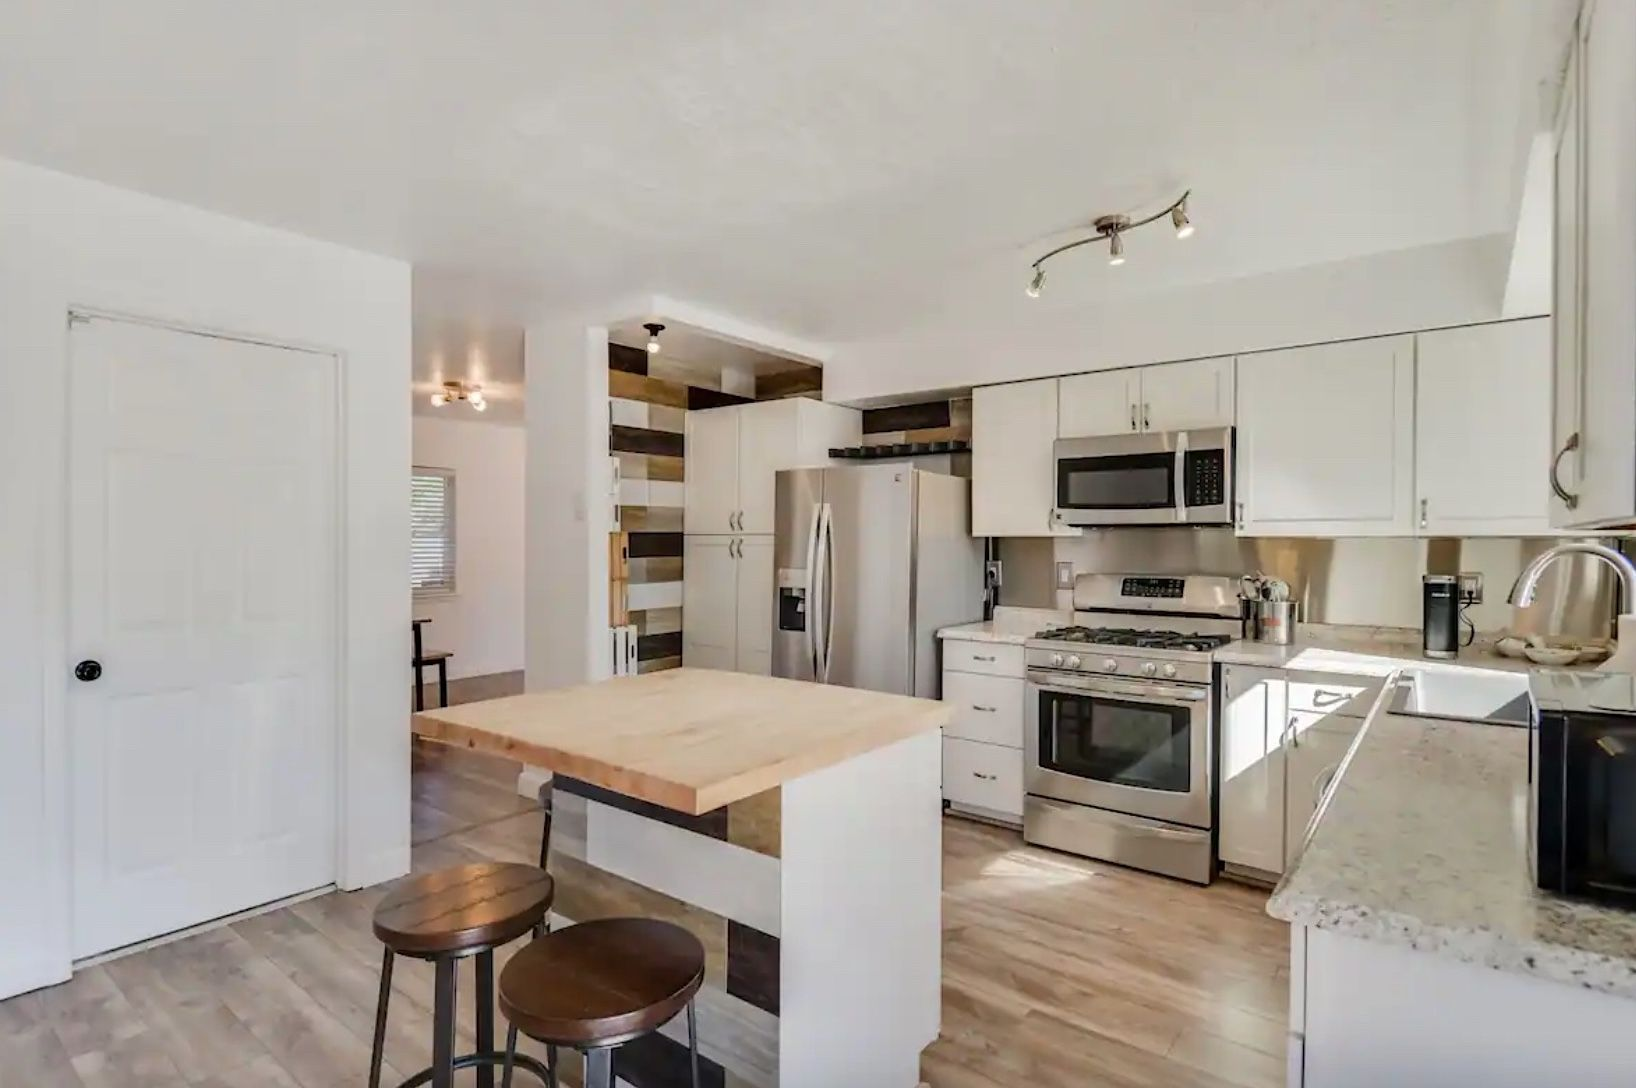 Kitchen in Airbnb available near the Albuquerque International Balloon Festival